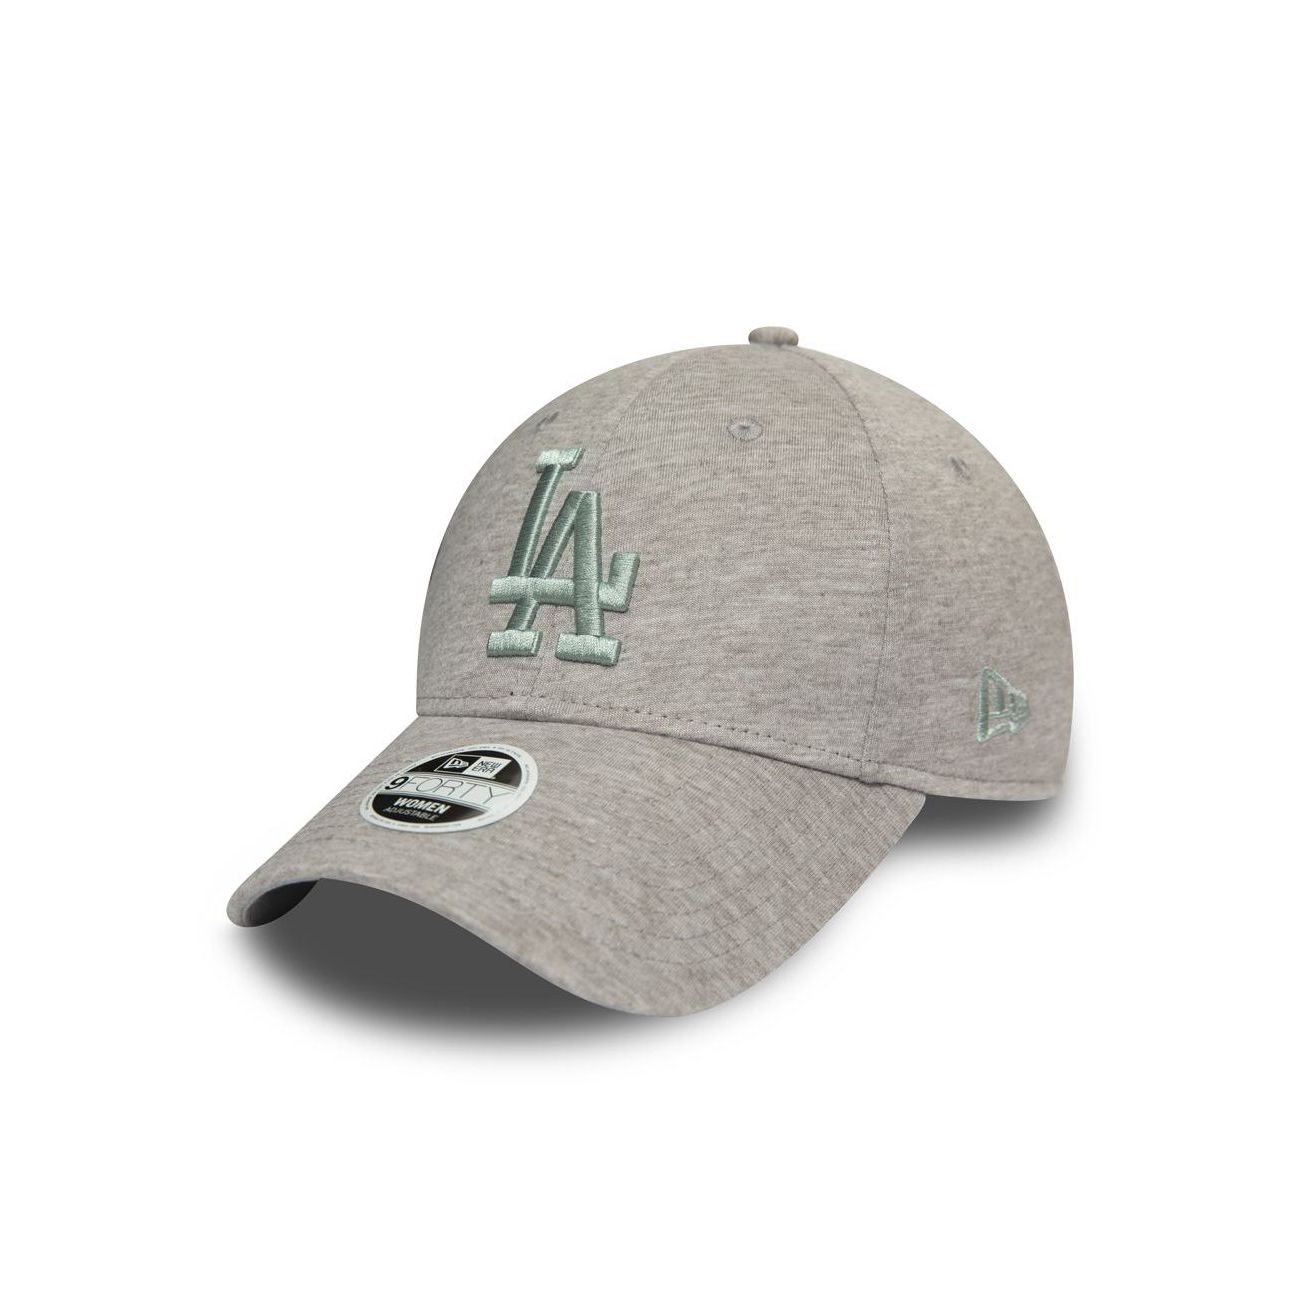 Mode- Lifestyle adulte NEW ERA Casquette Femme 9FORTY Jersey Los Angeles Dodgers